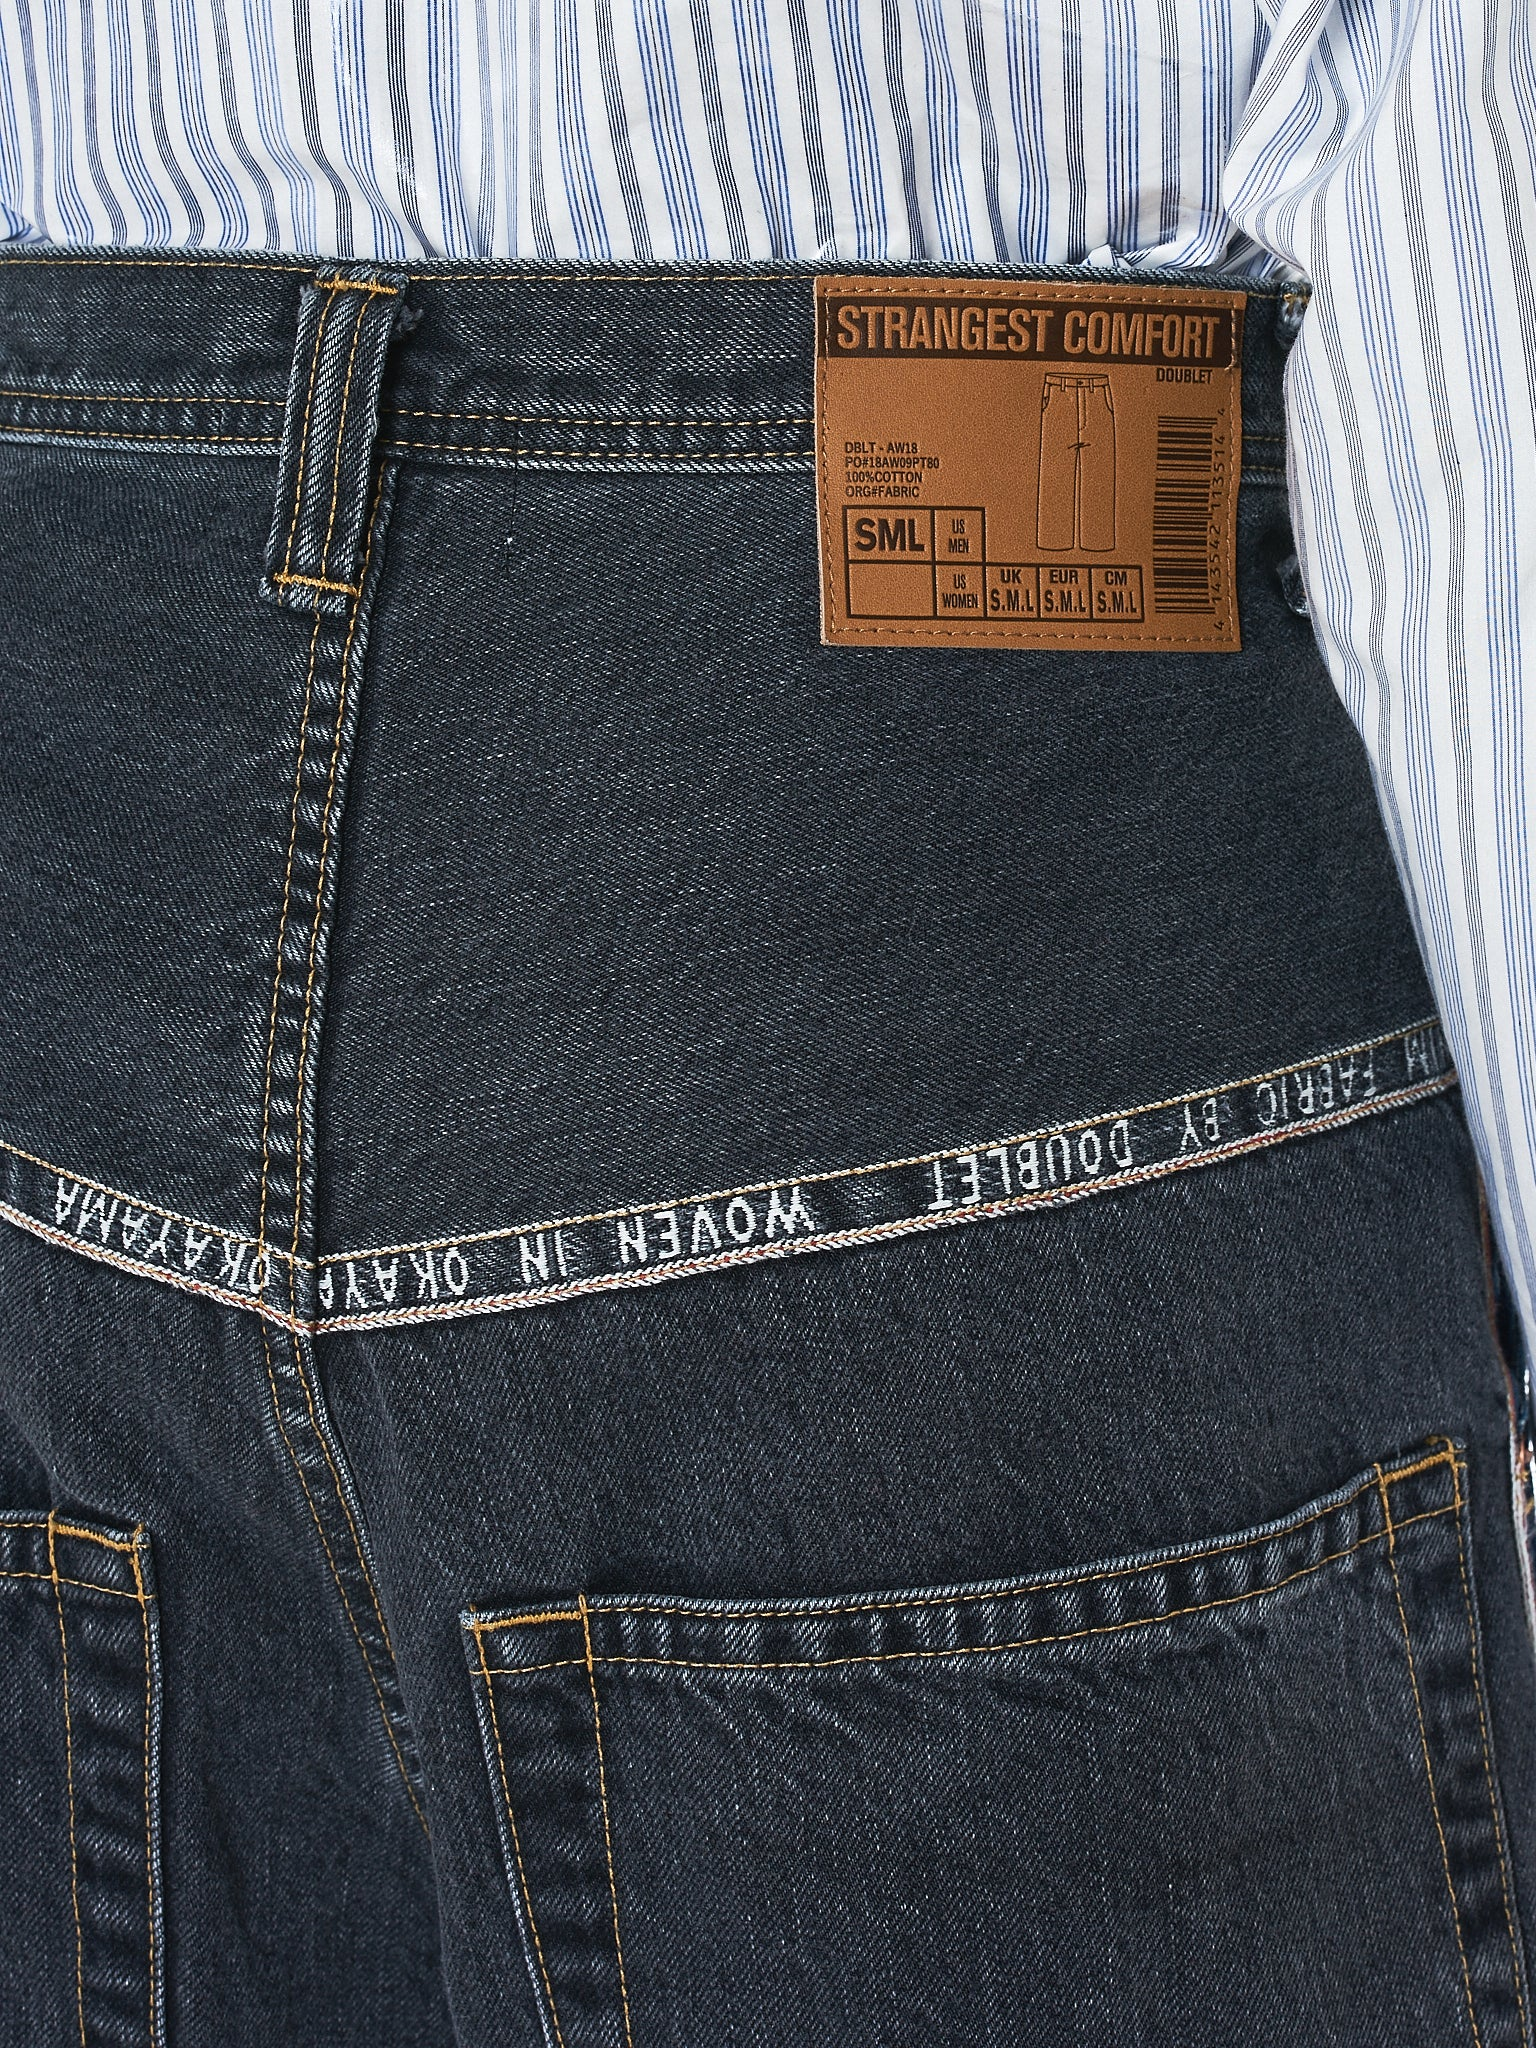 Doublet Jeans - Hlorenzo Detail 2